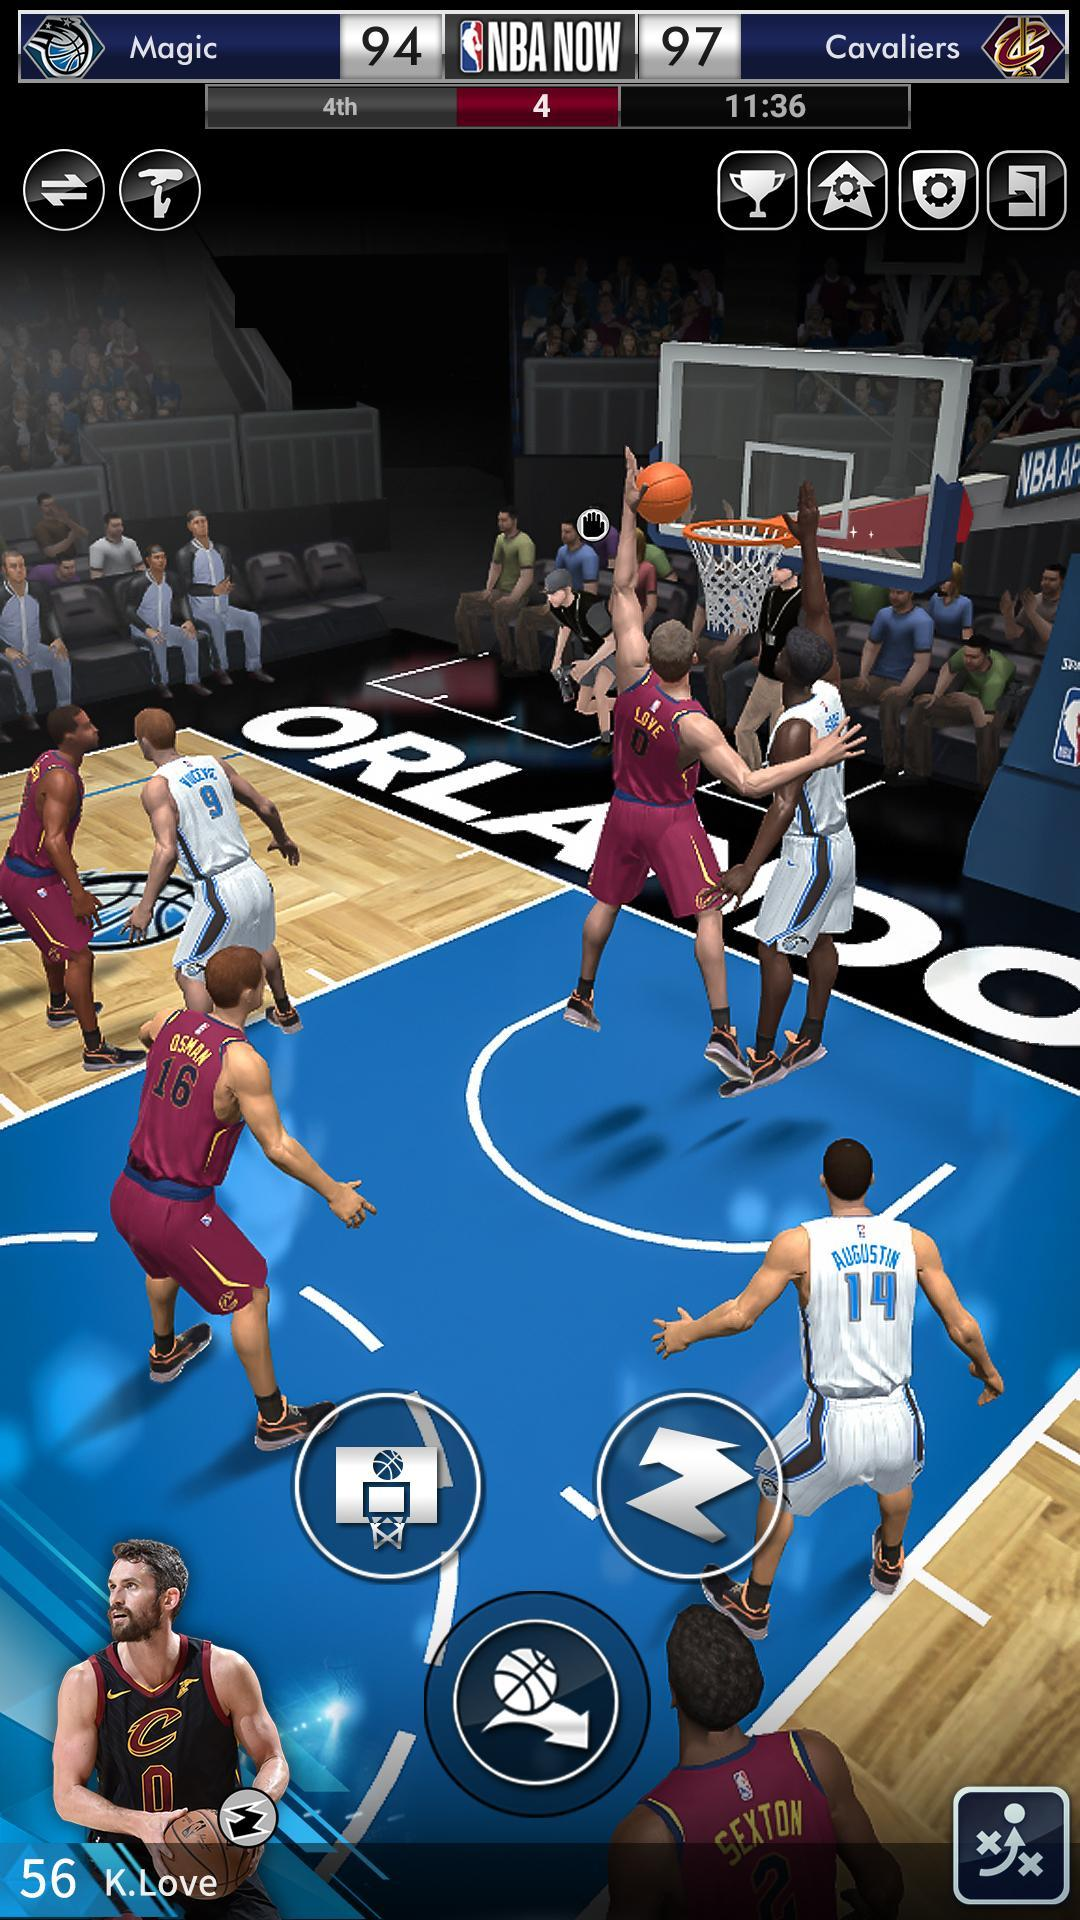 NBA NOW Mobile Basketball Game 1.5.4 Screenshot 5